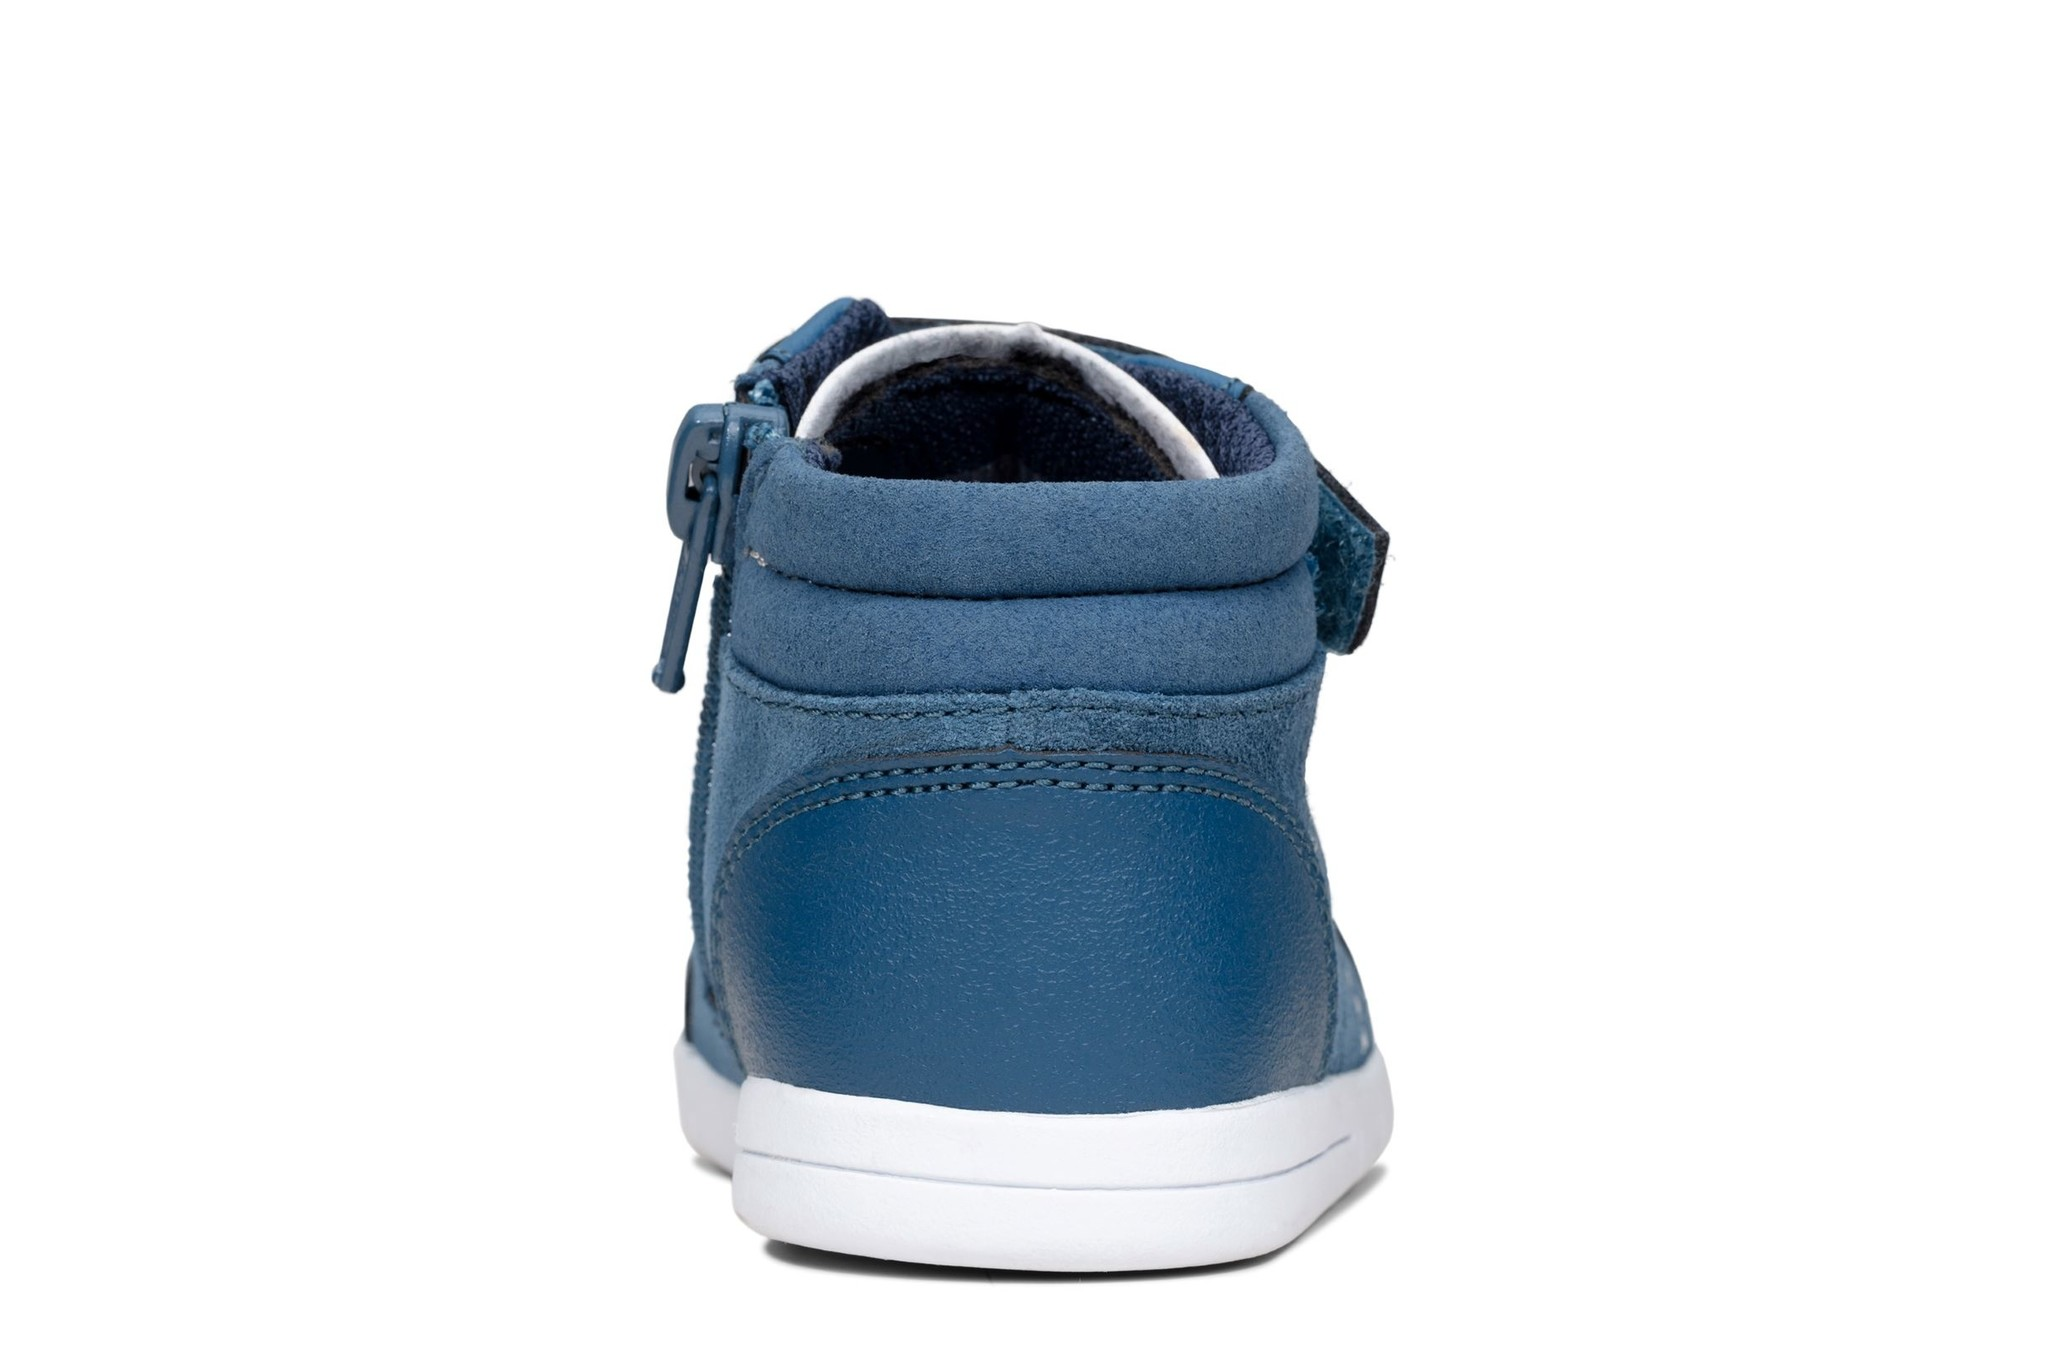 Clarks Emery Beat Blue Suede